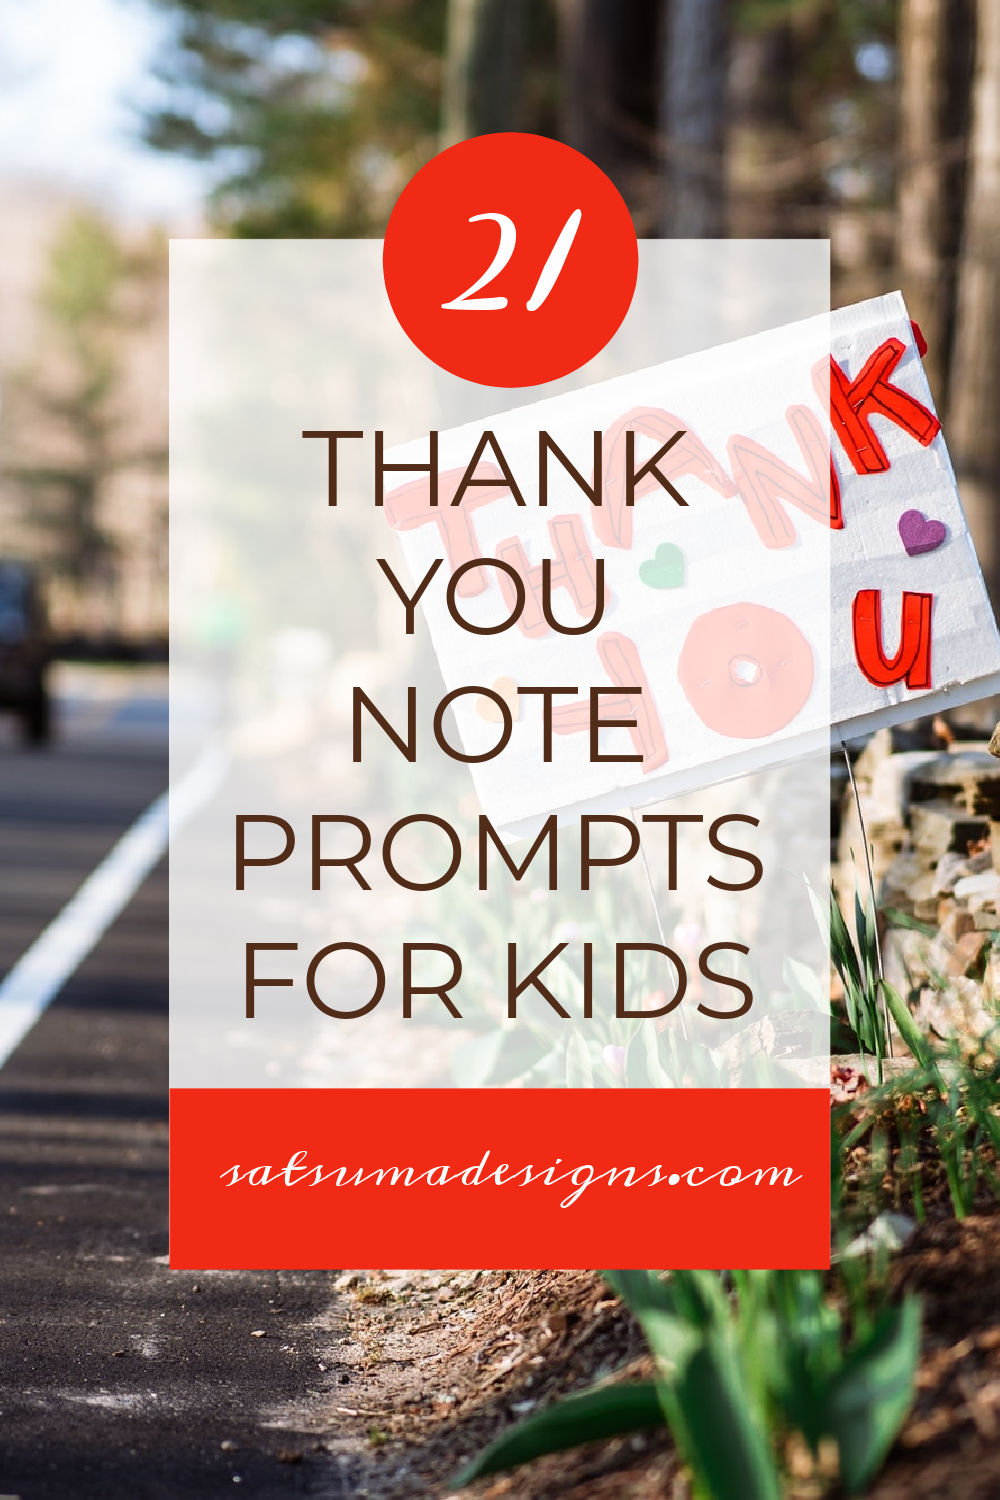 21 Thank You Note Prompts for Kids